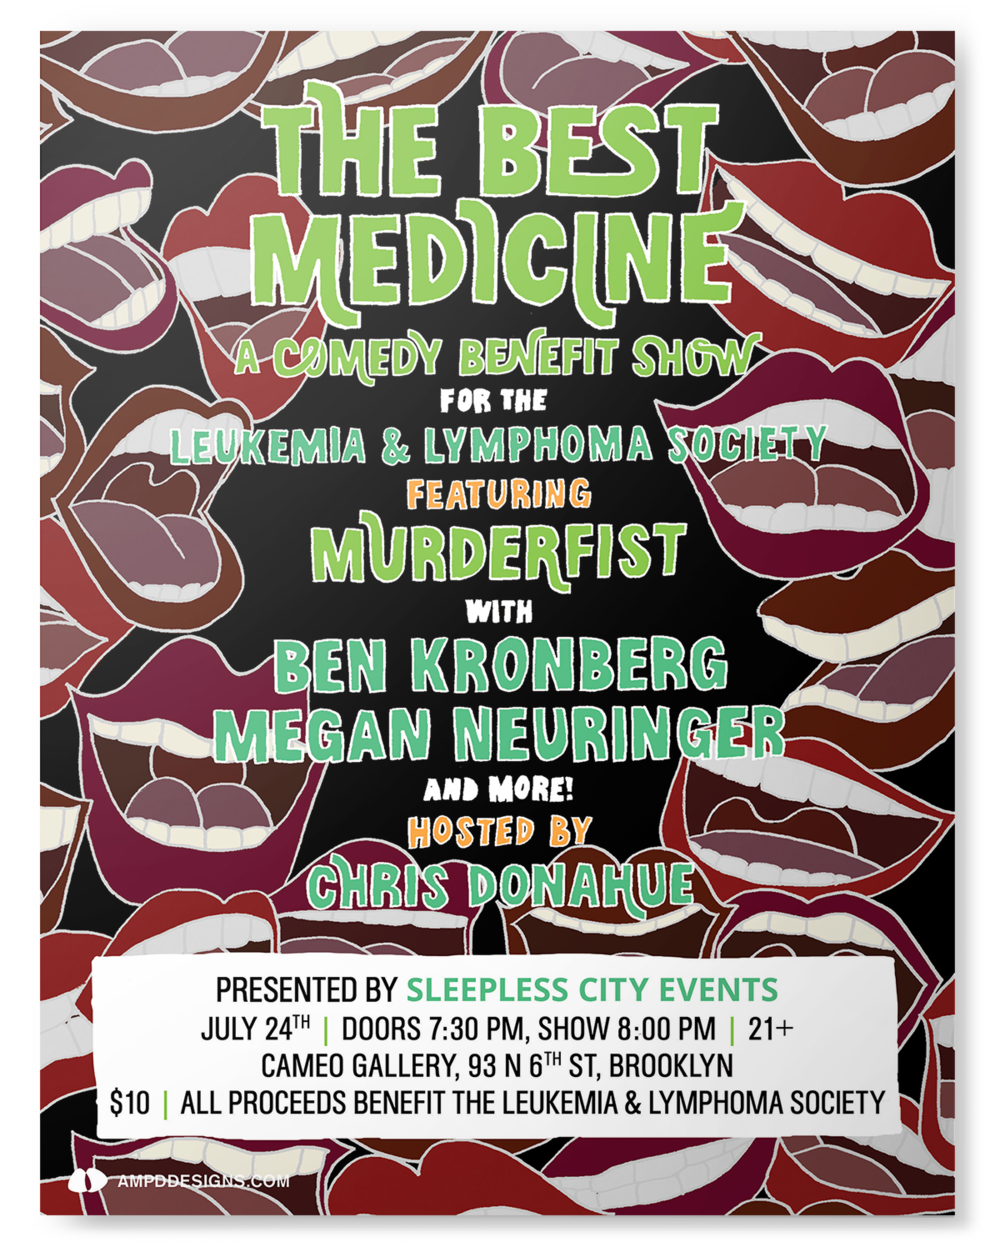 The Best Medicine, a comedy benefit show, in Brooklyn